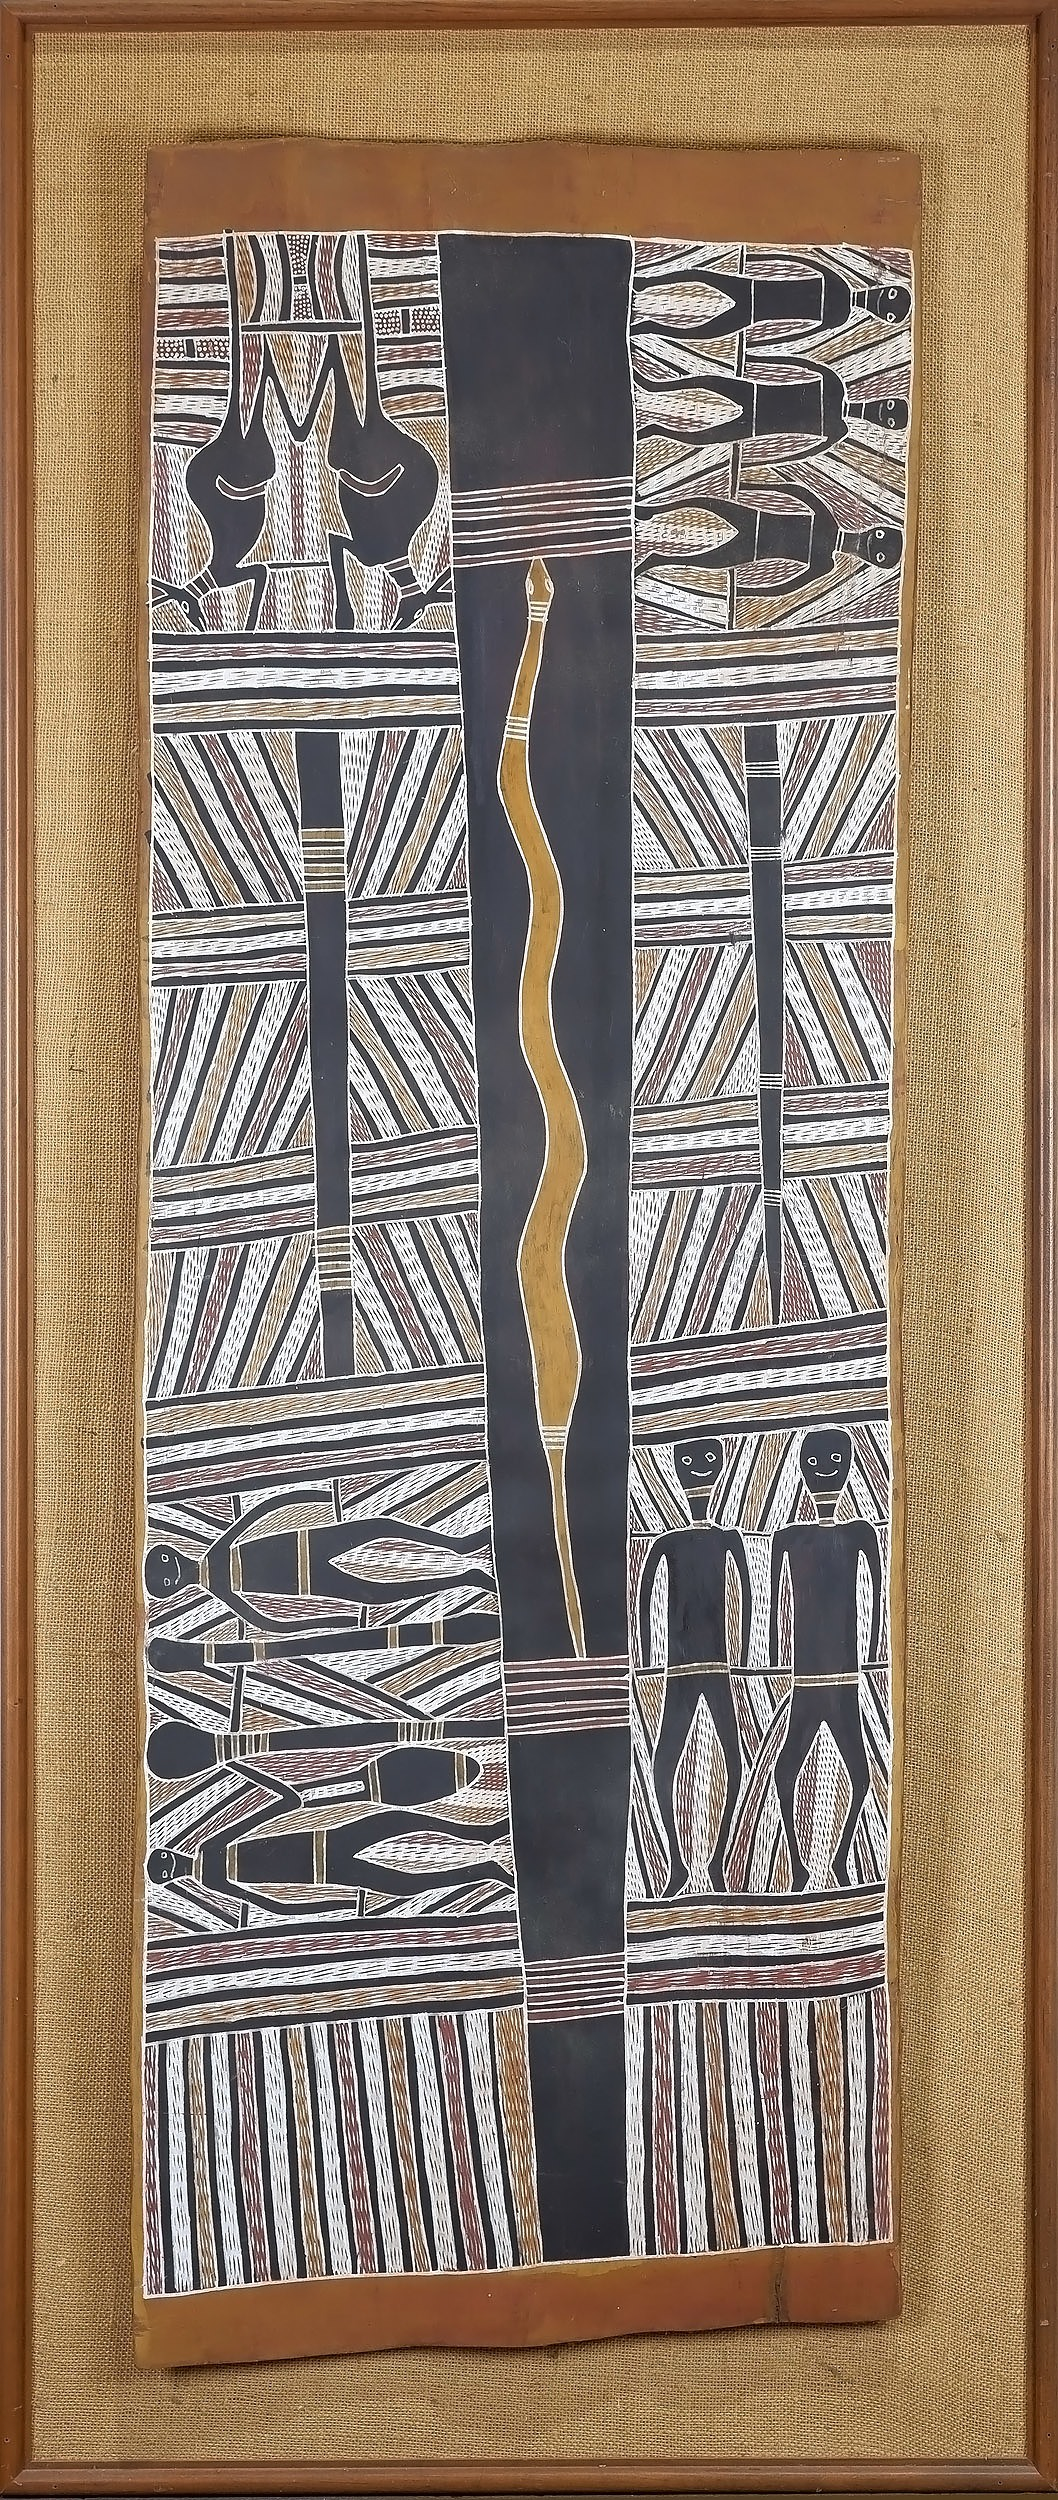 'Mithili Wanambi (Marrakulu c.1923-81) The Naming of the Artists Country Circa 1976, Natural Earth Pigments on Eucalyptus Bark'